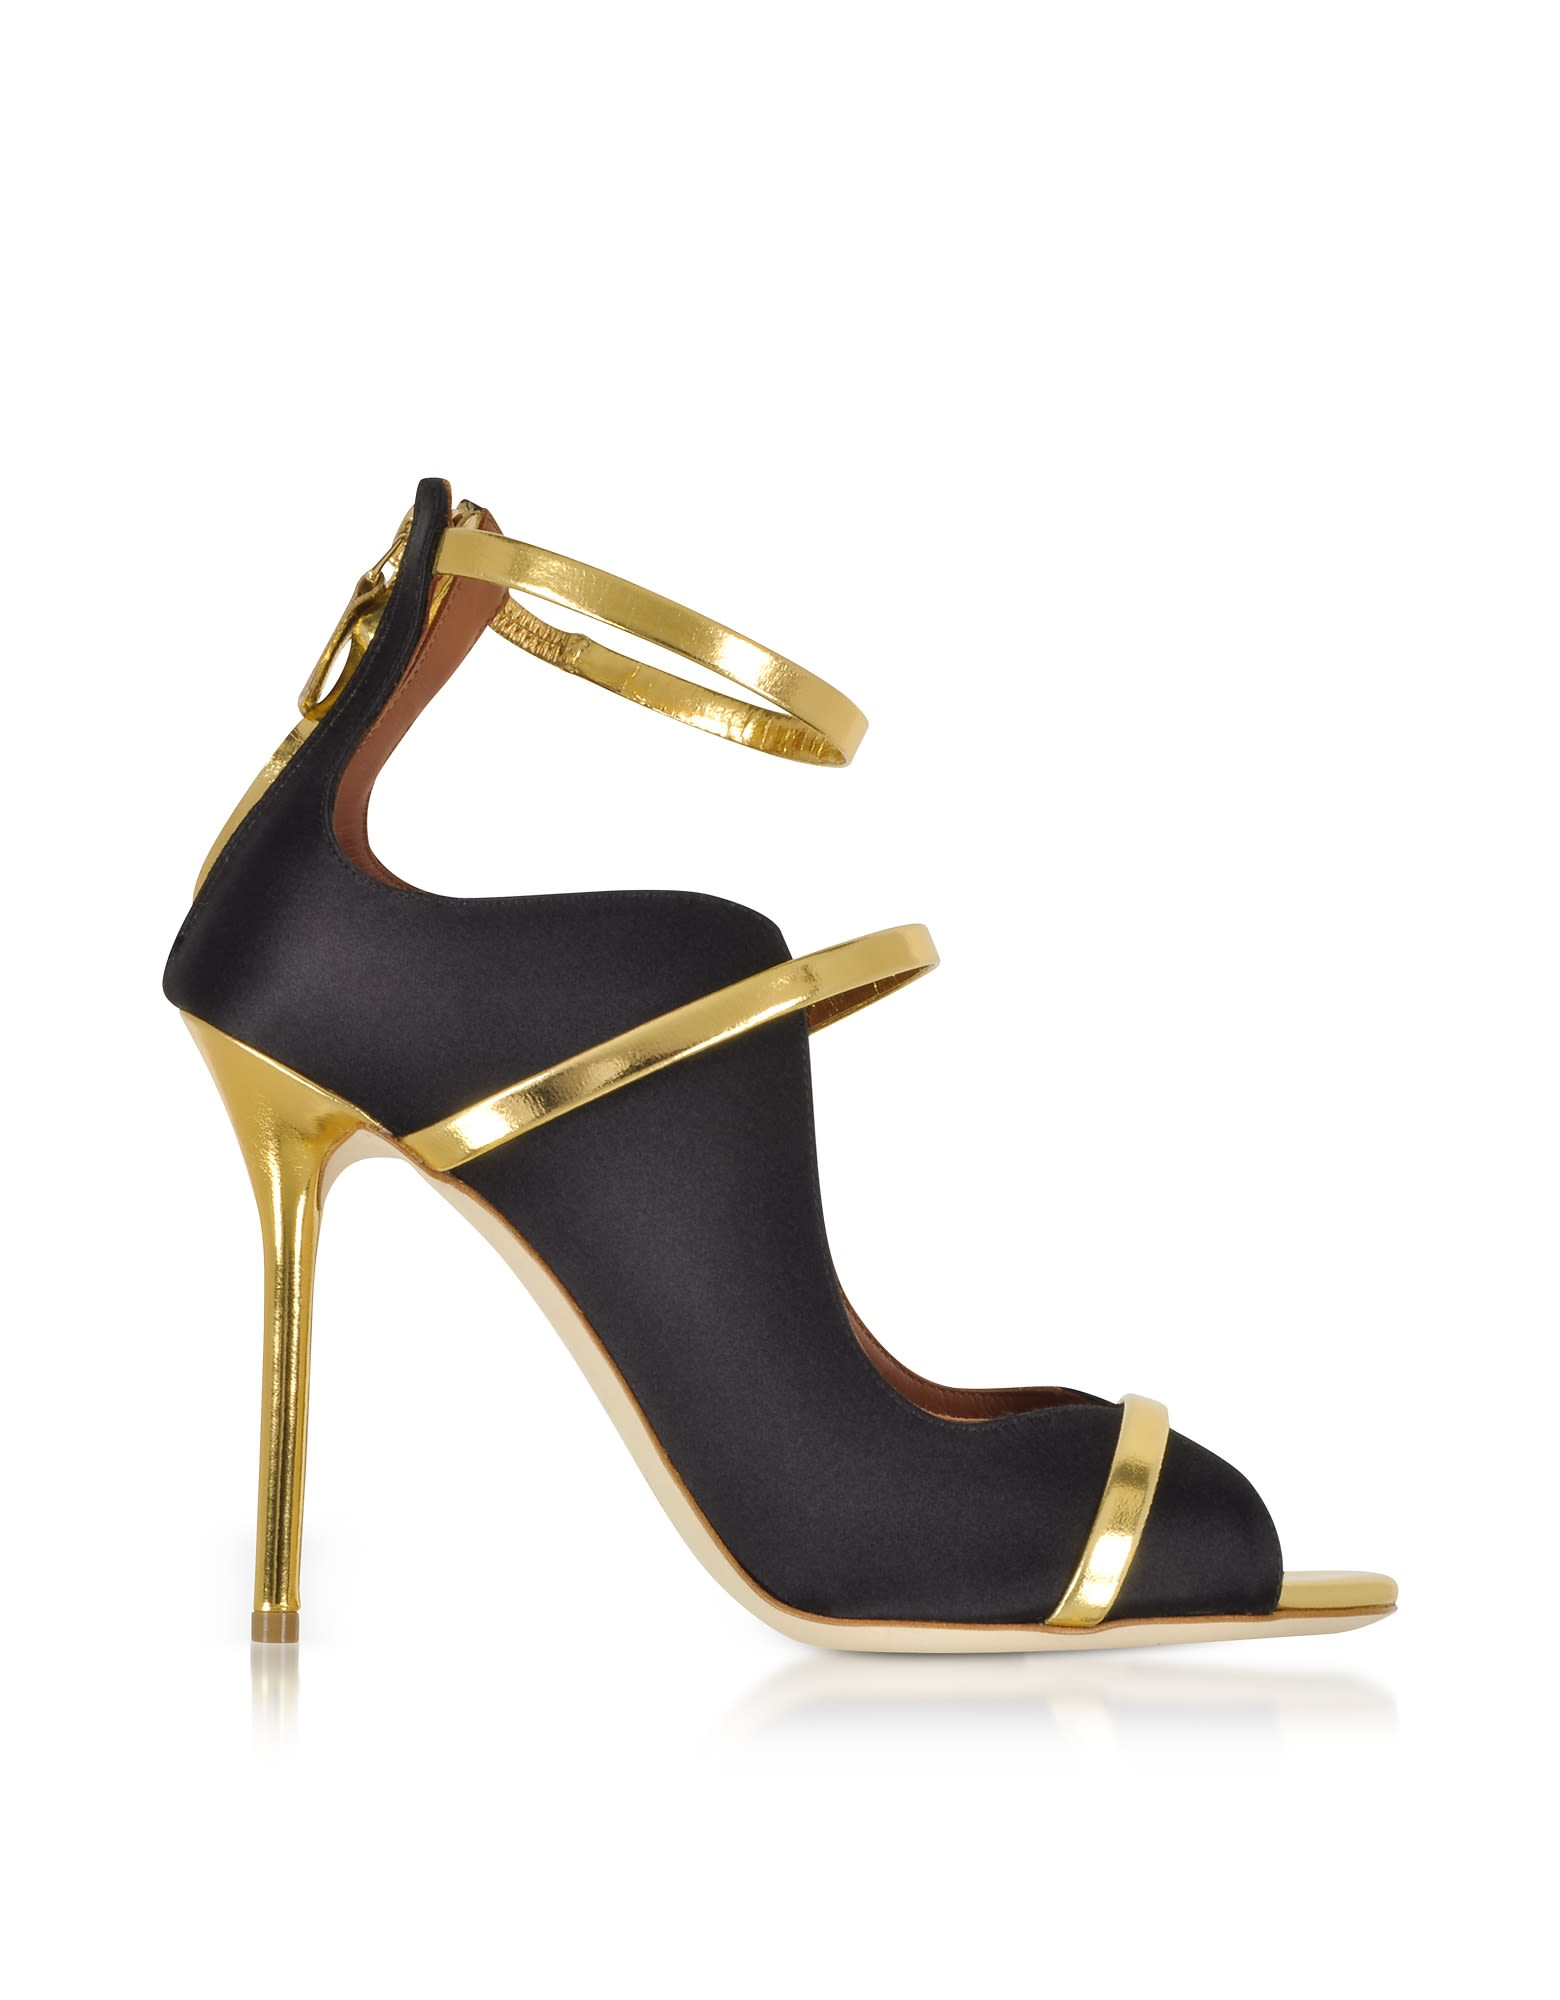 44036a23907 Malone Souliers Mika Black Satin And Gold Mirror Nappa High Heel Sandals -  Black ...